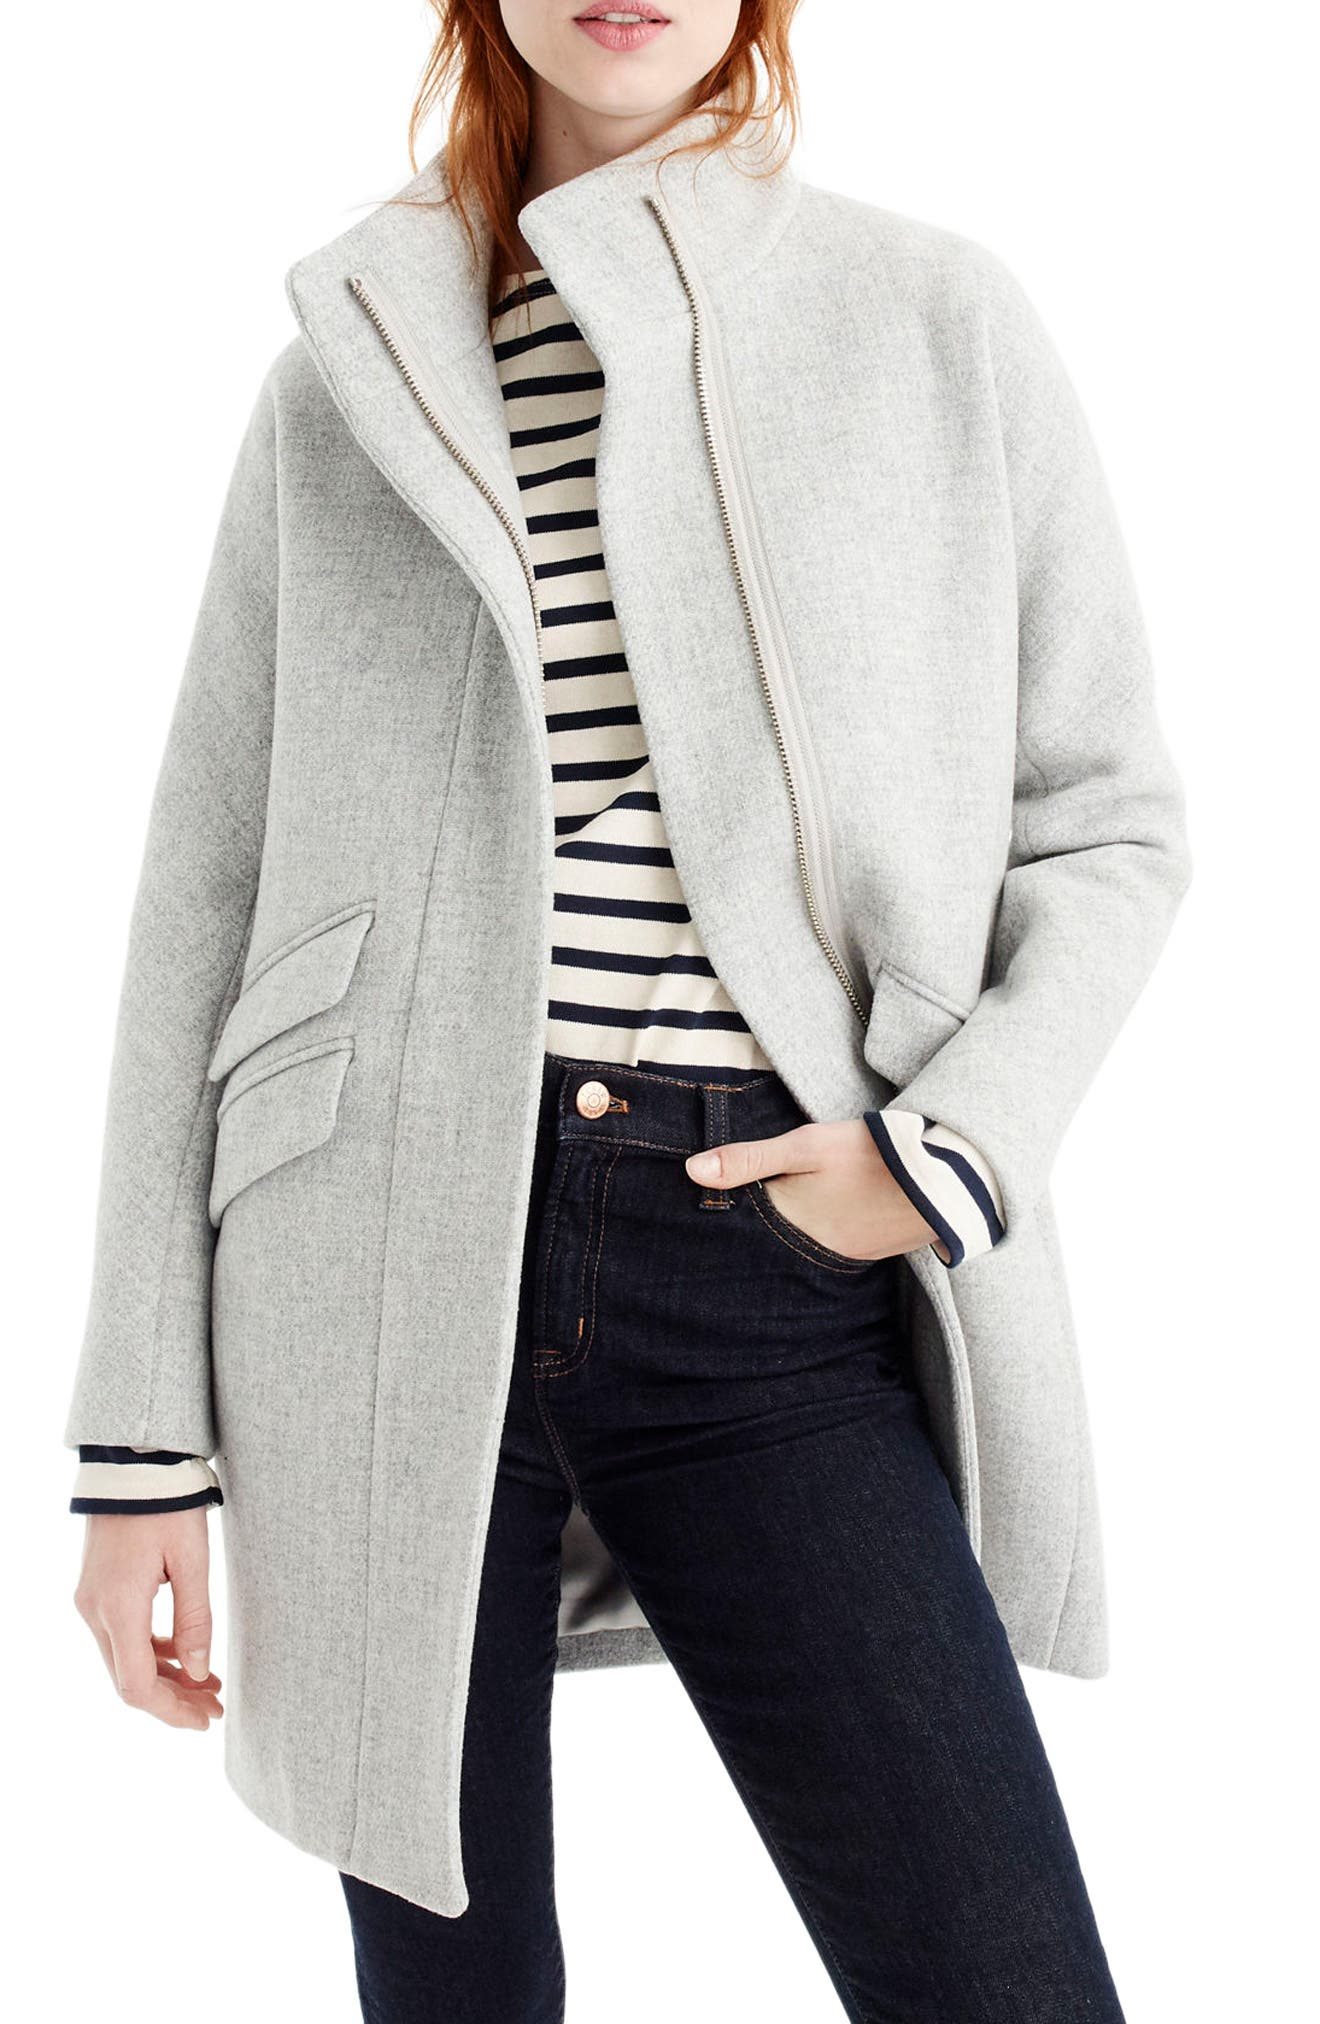 Alternate Image 1 Selected - J.Crew Stadium Cloth Cocoon Coat (Regular & Petite)